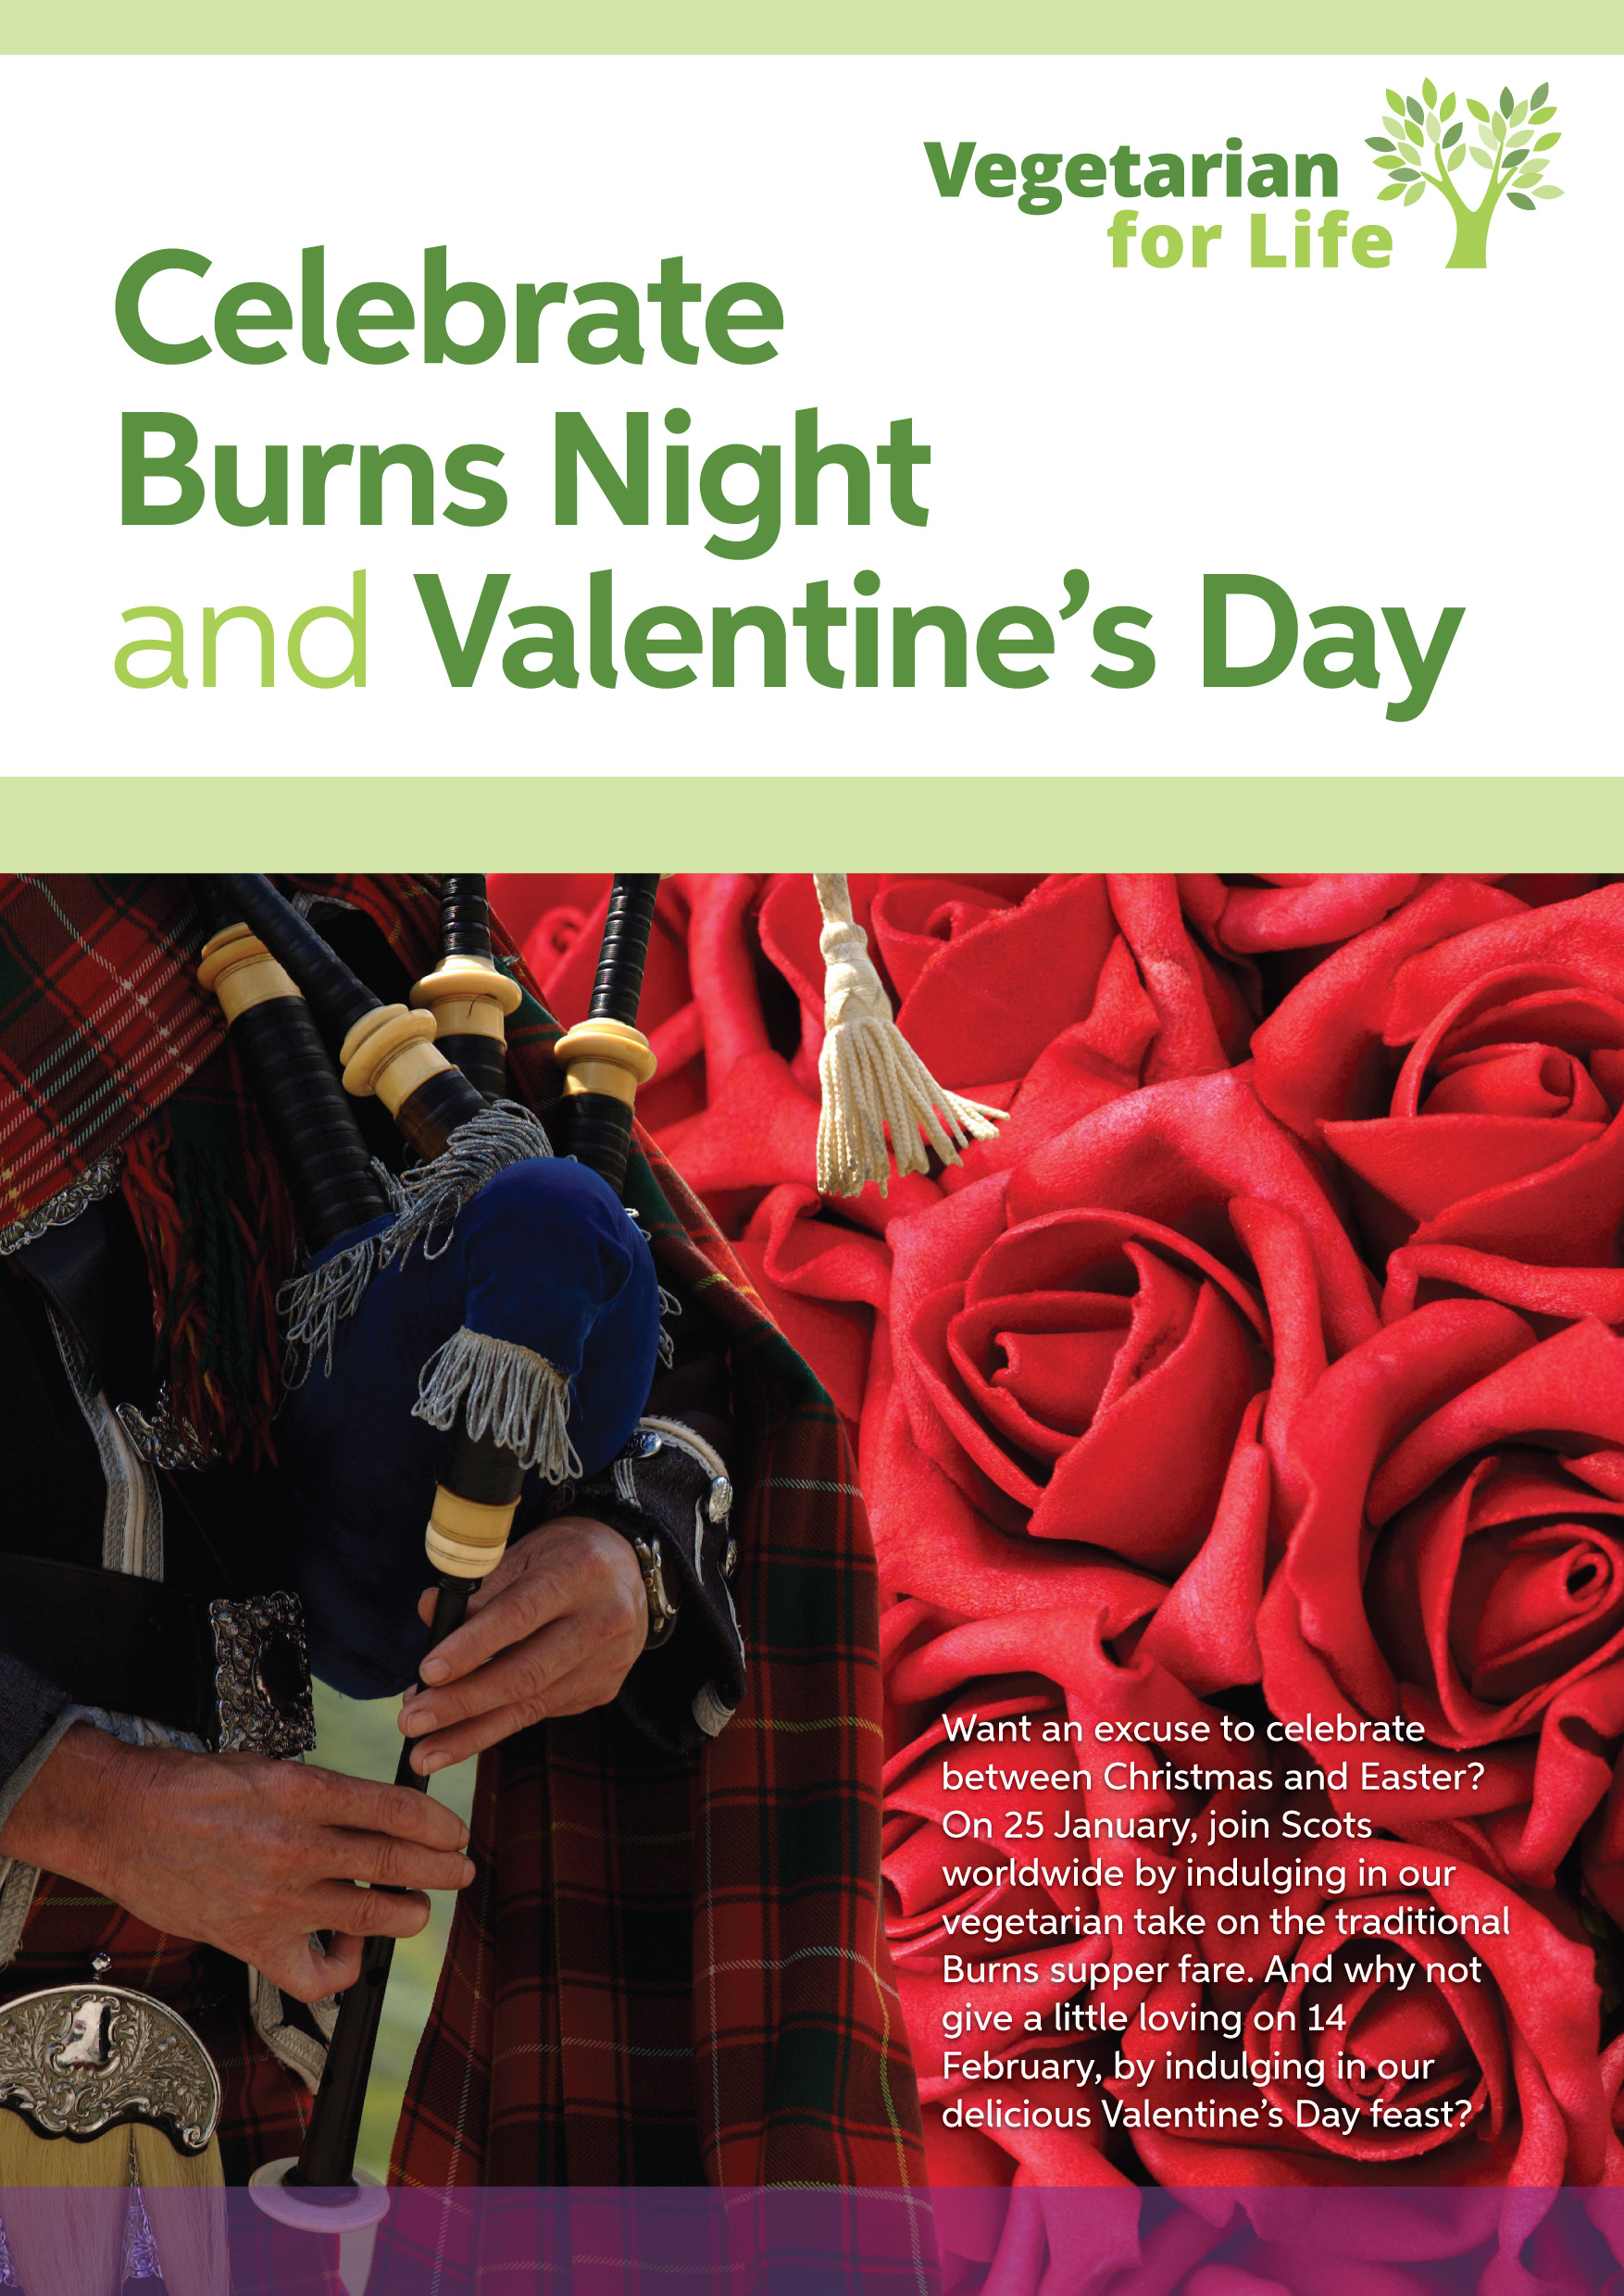 Celebrate Burns Night and Valentine's Day